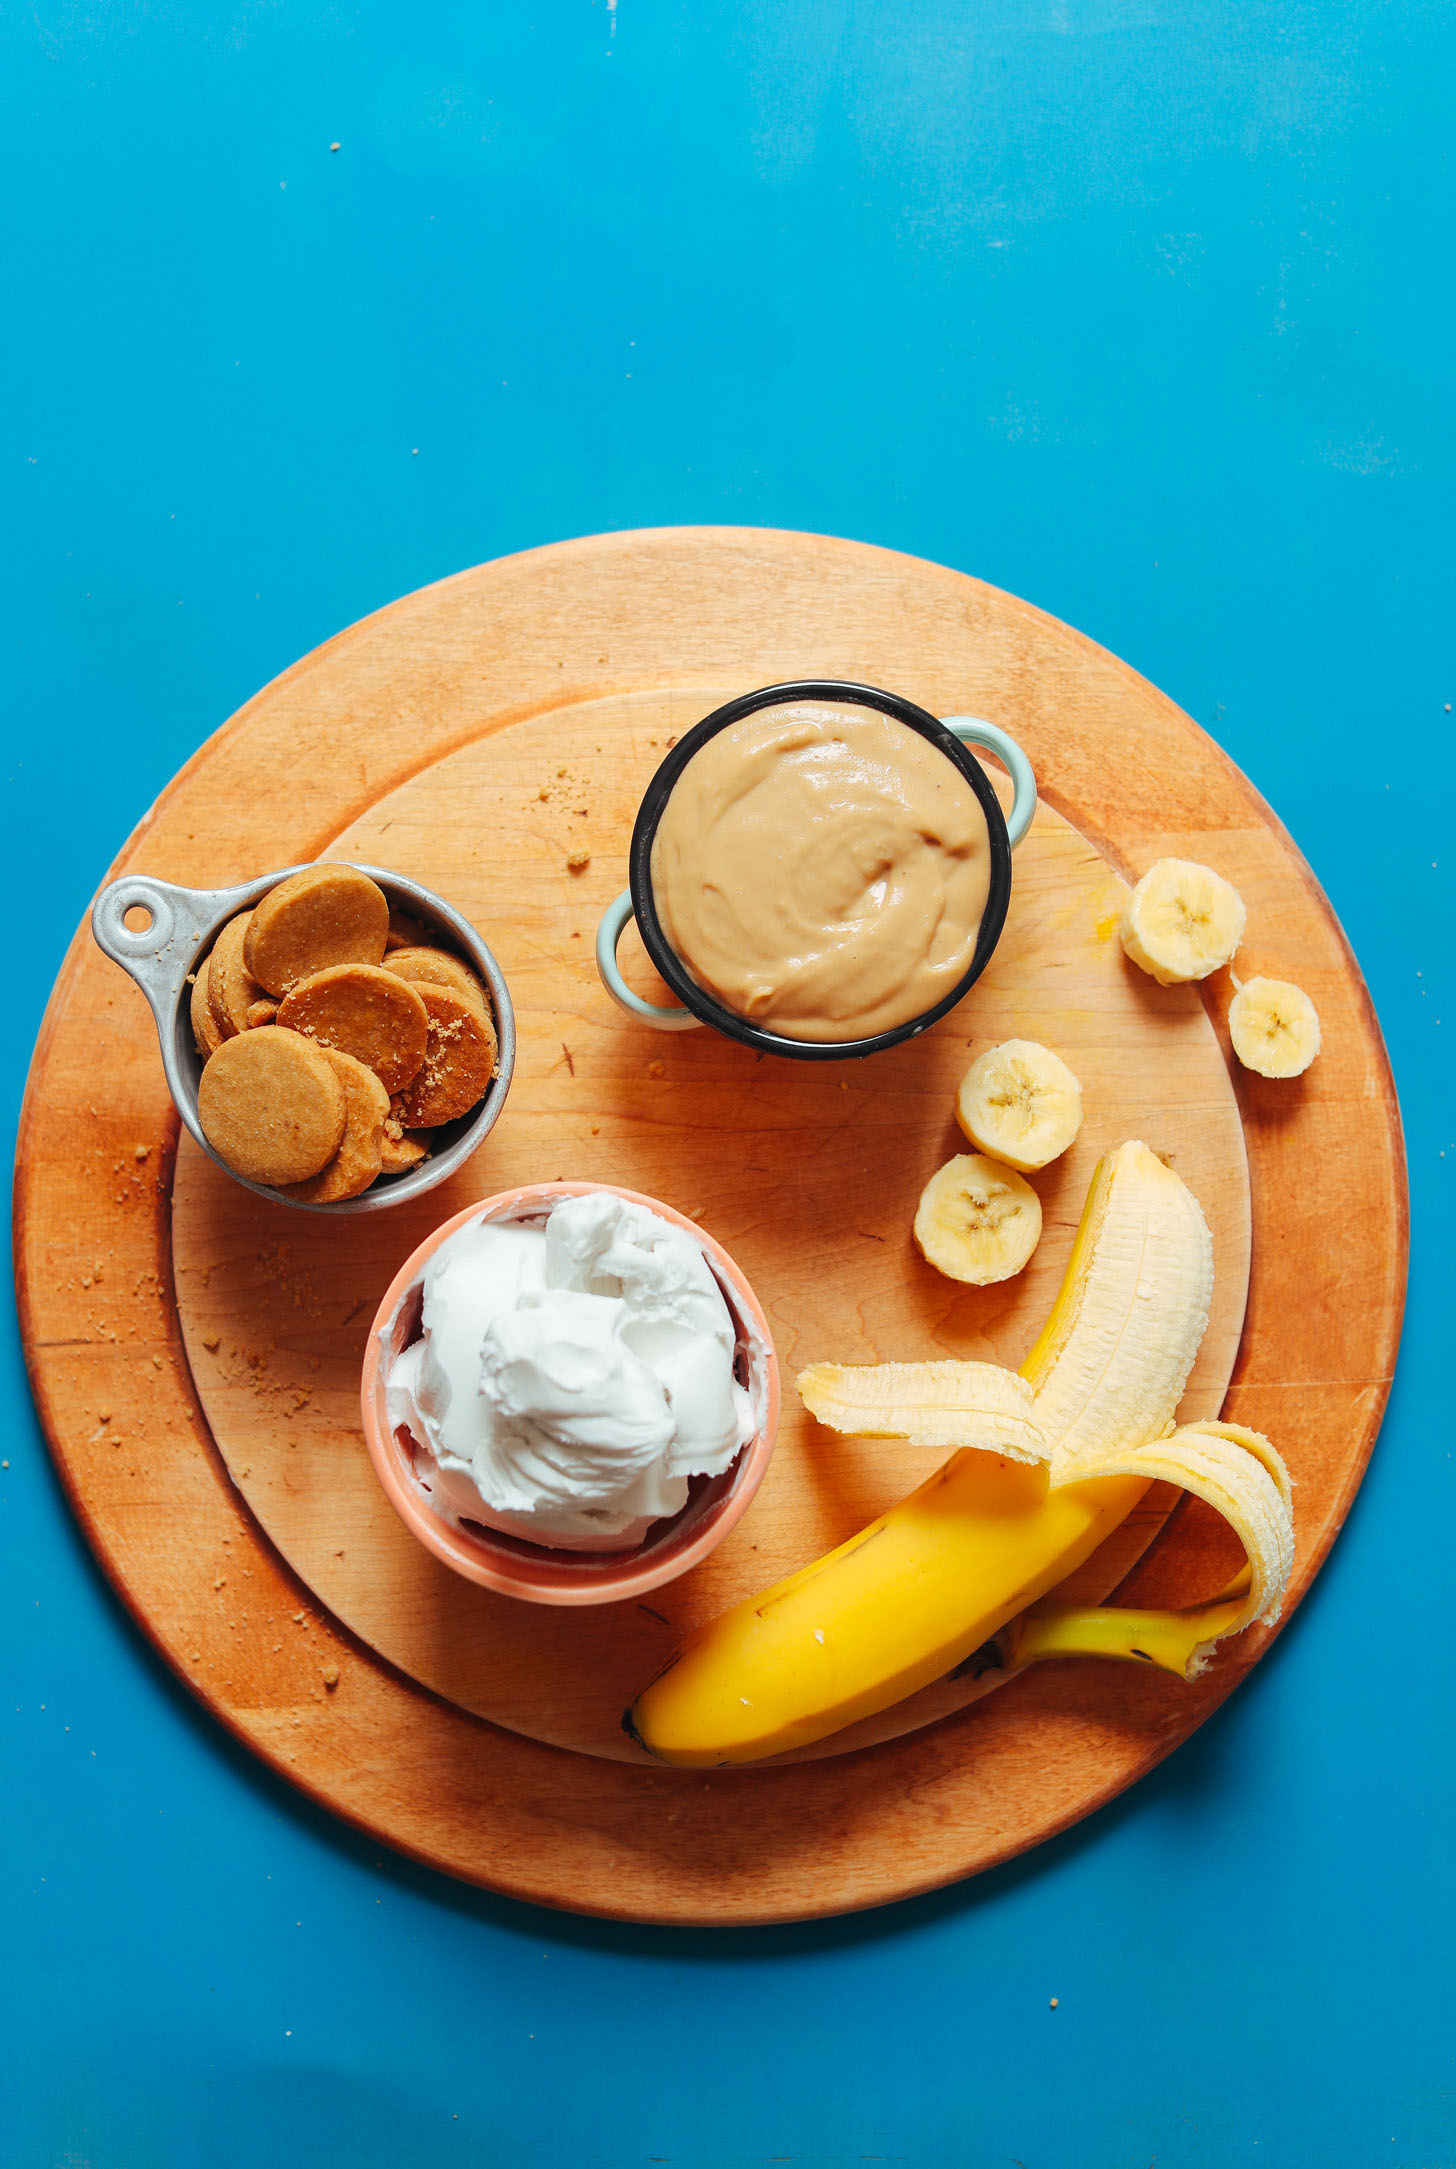 Cutting board with banana, coconut whip, peanut butter pudding, and vanilla wafers for a delicious gluten-free vegan dessert